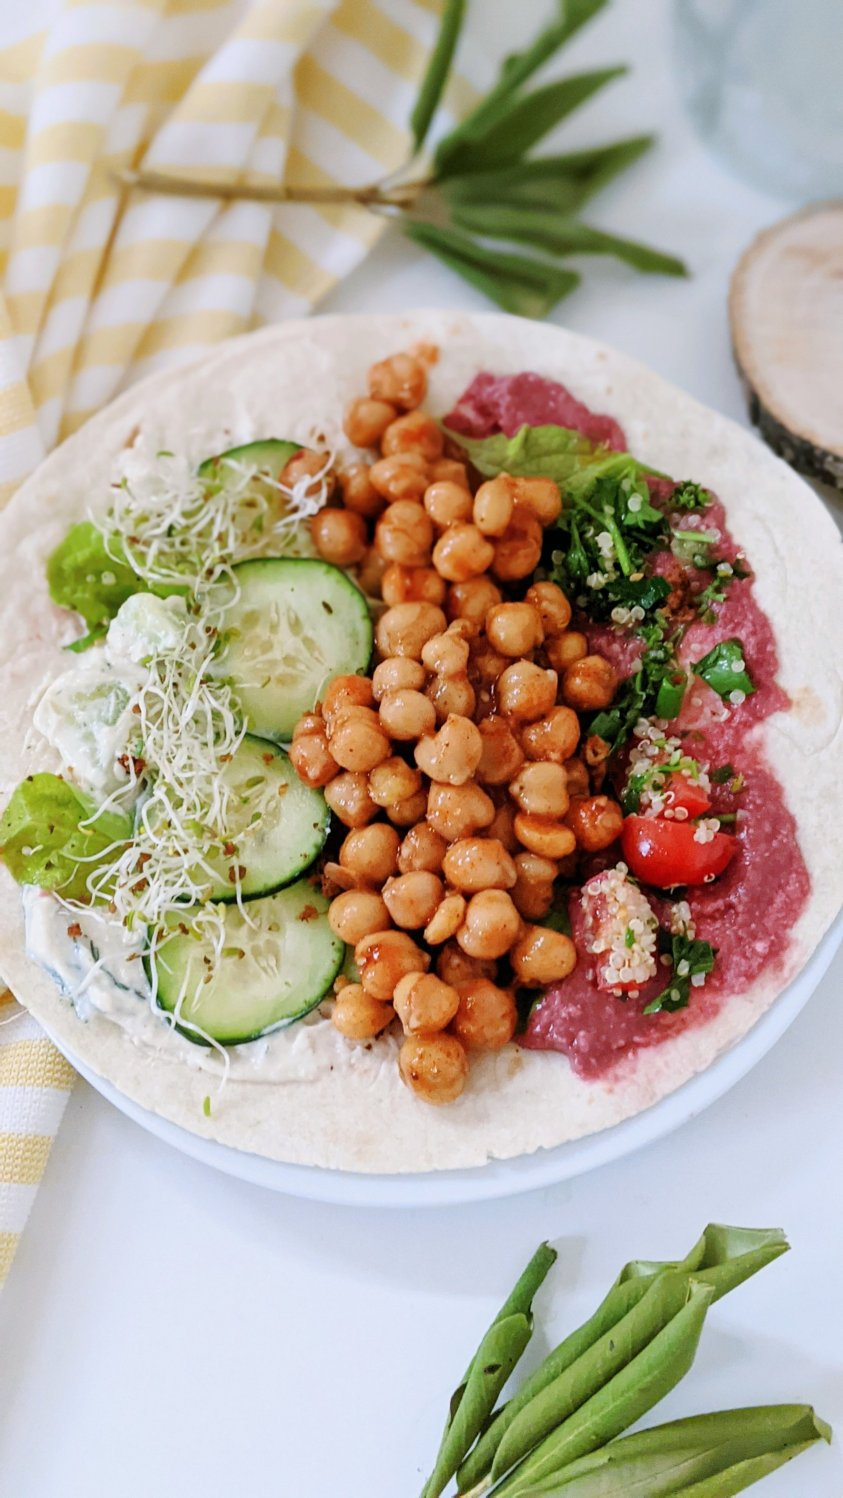 shawarma spiced chickpea recipe pita wrap garbanzo beans california grown recipes healthy chickpea lunch ideas canned chickpeas at home wrap and sandwiches with beans vegan gluten free shwarma